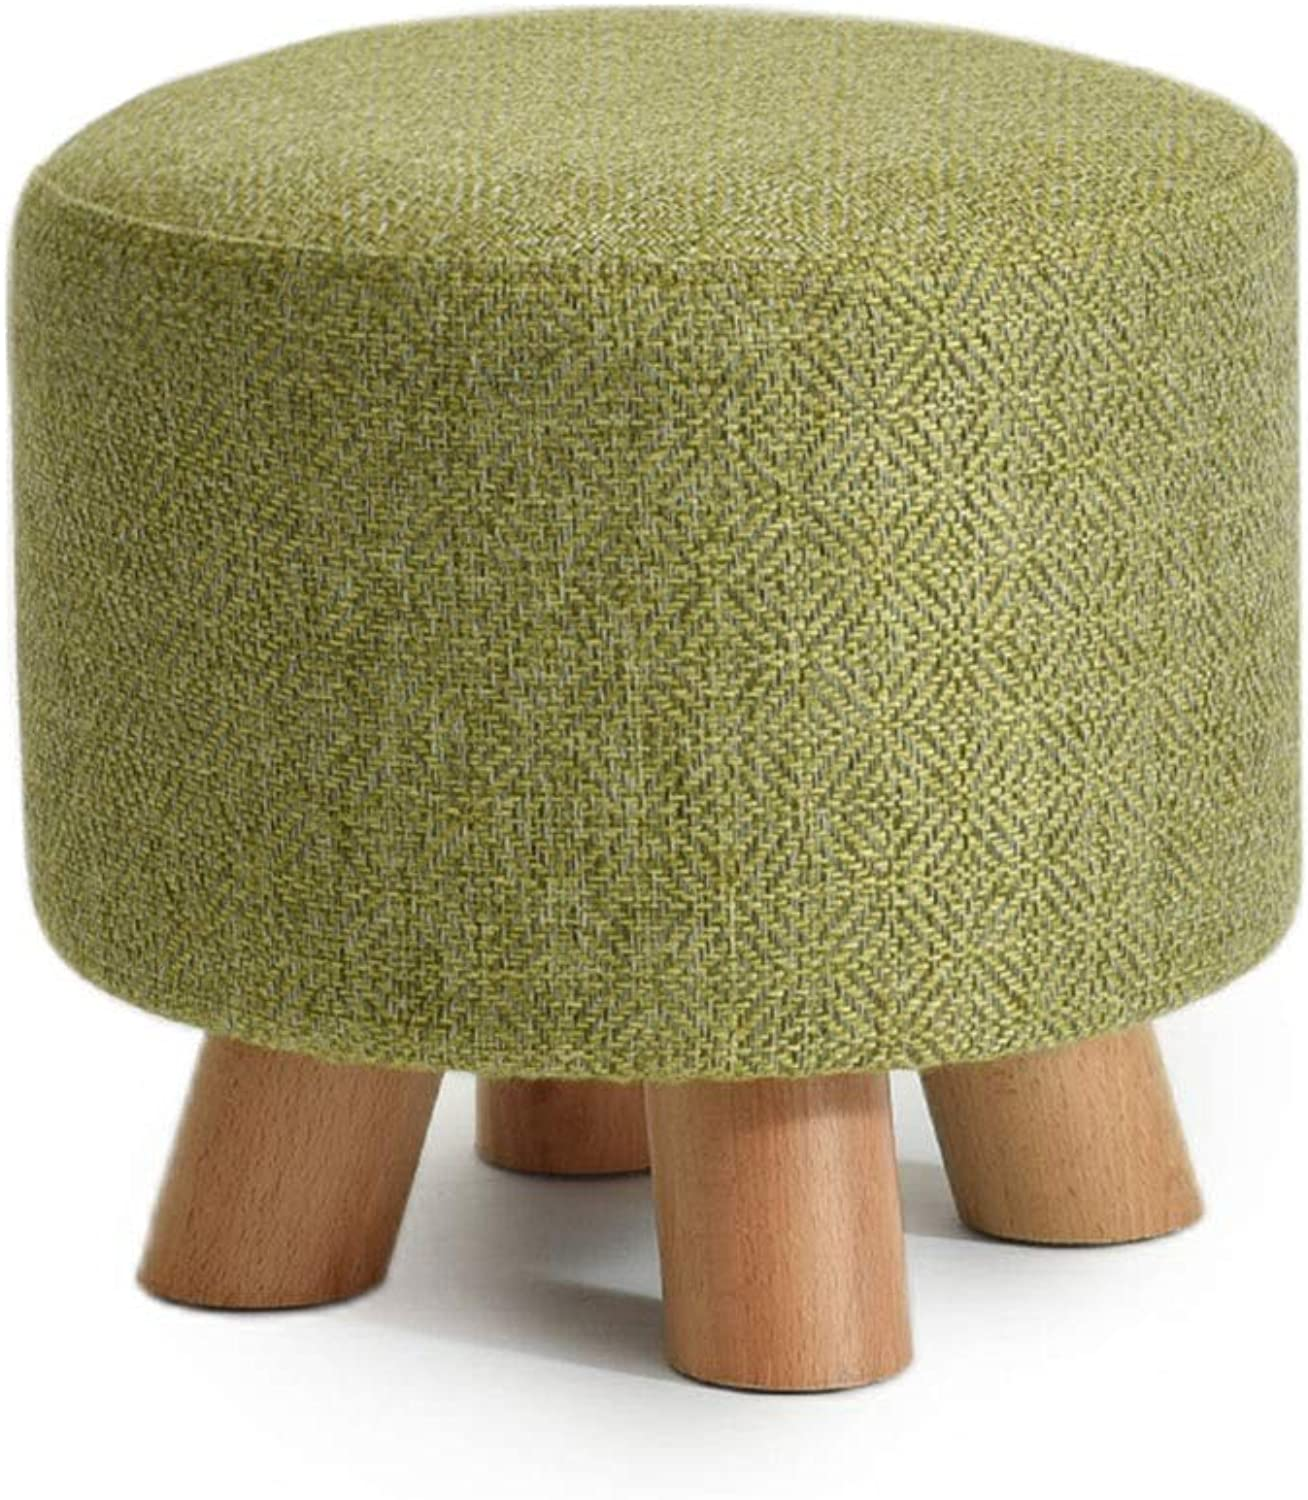 Solid Wood Sofa Footstool Modern Change shoes Bench Living Room Round Stool Linen Low Stool Height 25 × Width 29cm GW (color   Matcha Green)